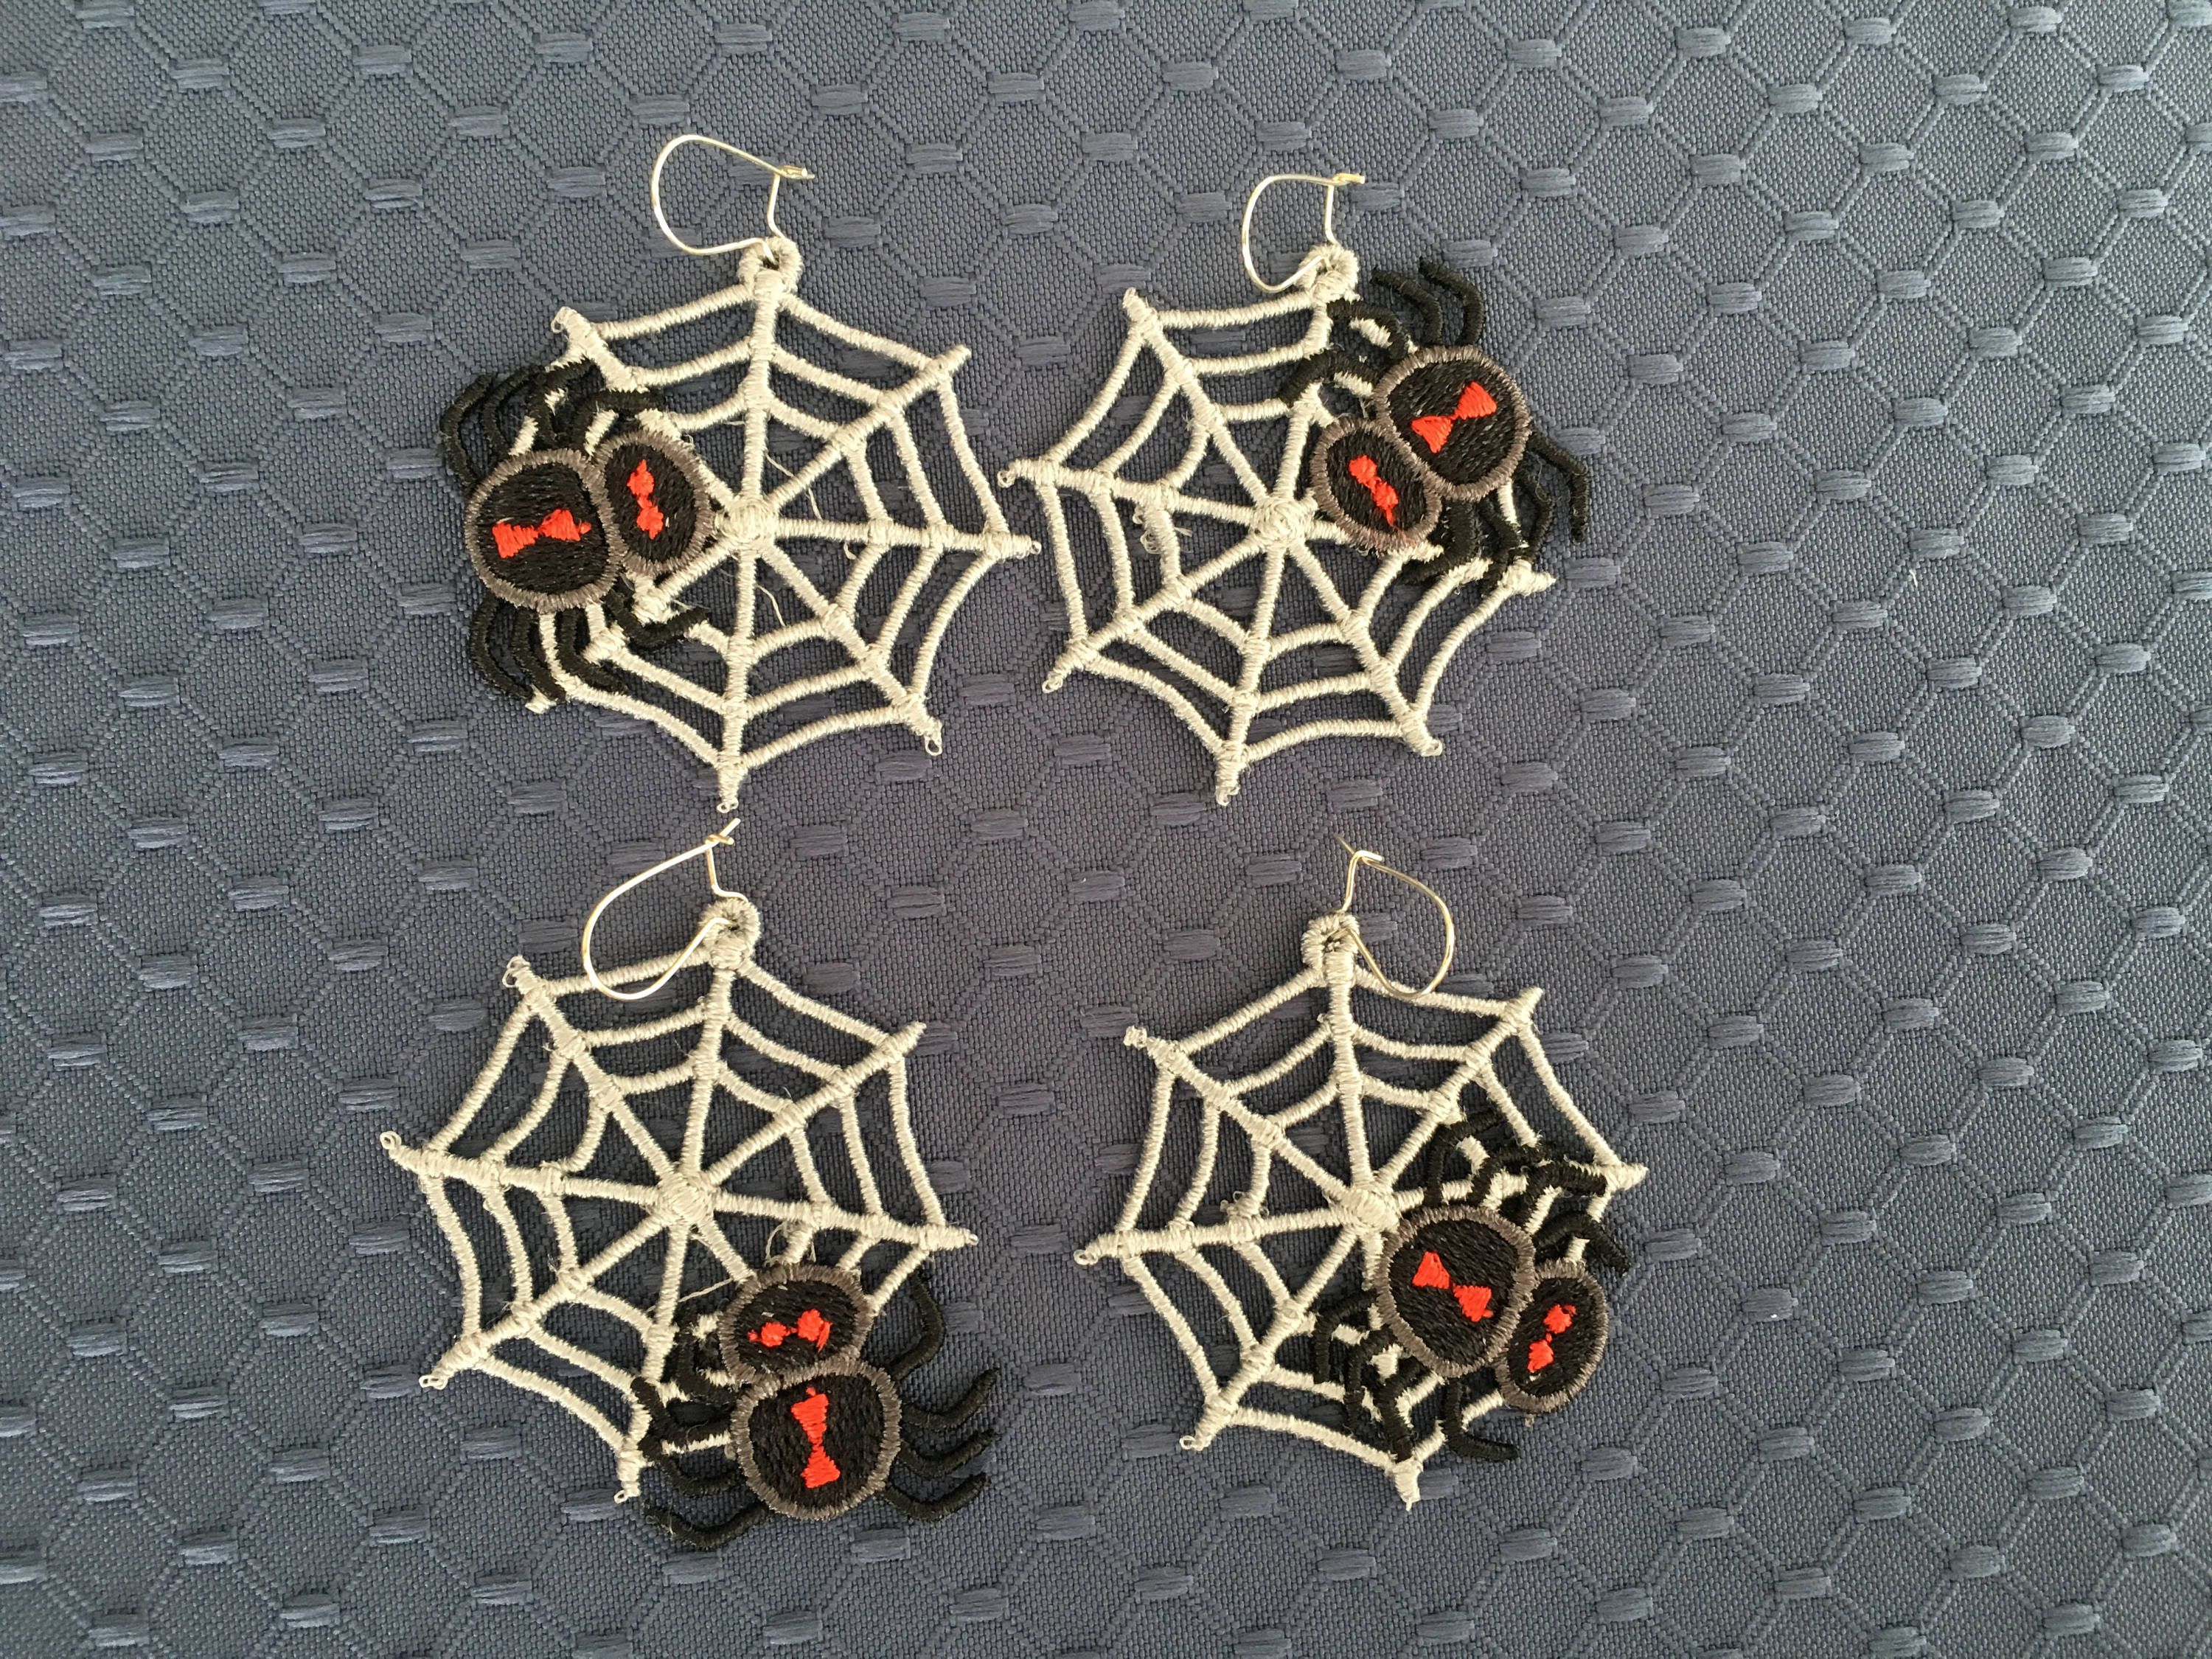 Fsl Spider Web Earrings 4 Spider Webs In A 4x4 Hoop Spider Etsy In 2020 Digital Embroidery Patterns Free Standing Lace Machine Embroidery Designs